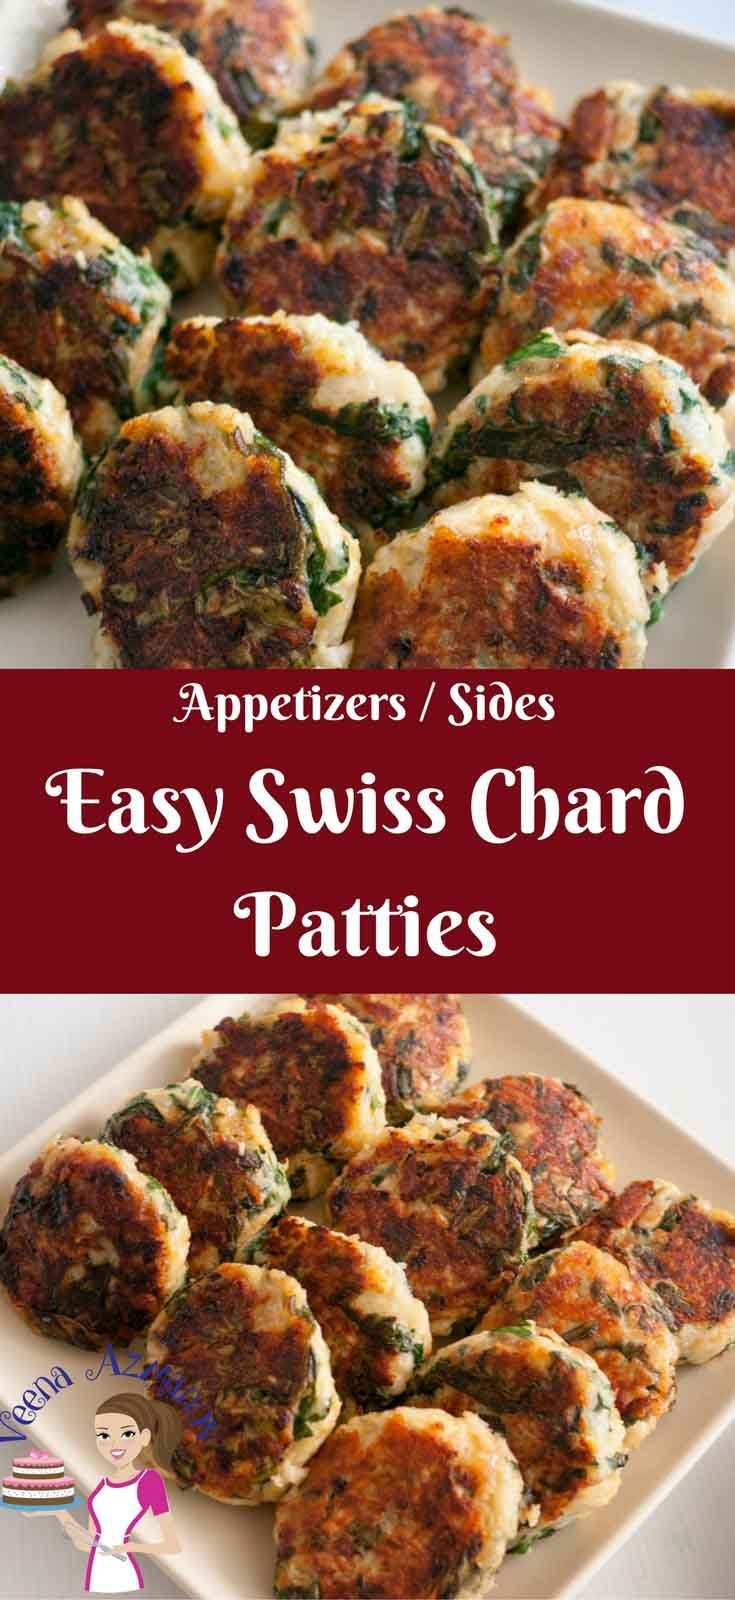 Whether you call these Swiss Chard patties or Swiss Chard Cakes these make amazing appetizers or sides. They are so versatile they can be served with any meal from breakfast to dinner. You can serve them on their own as a snack or sandwich filling too.